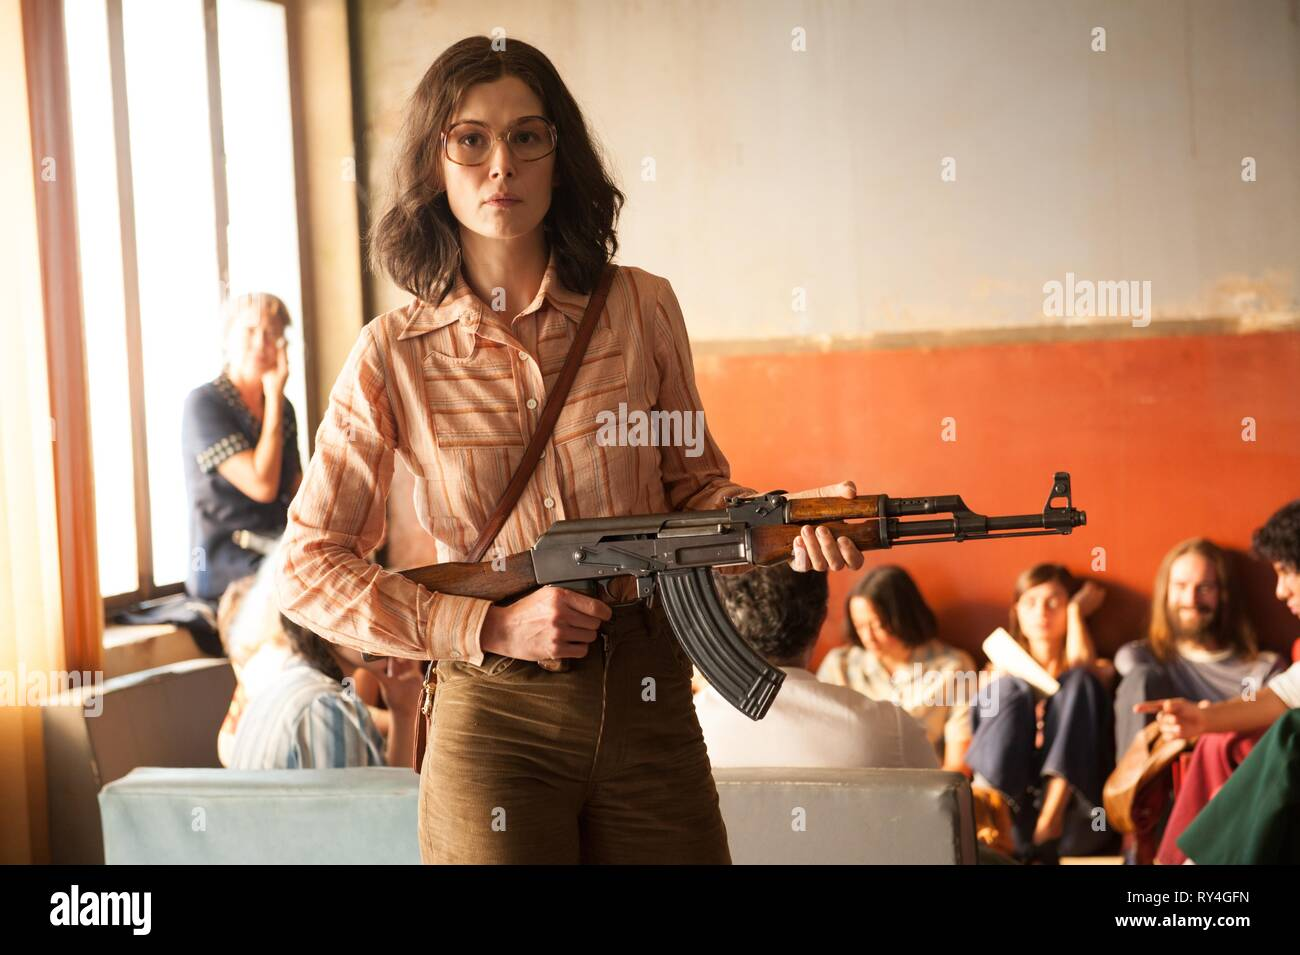 ROSAMUND PIKE, 7 DAYS IN ENTEBBE, 2018 - Stock Image